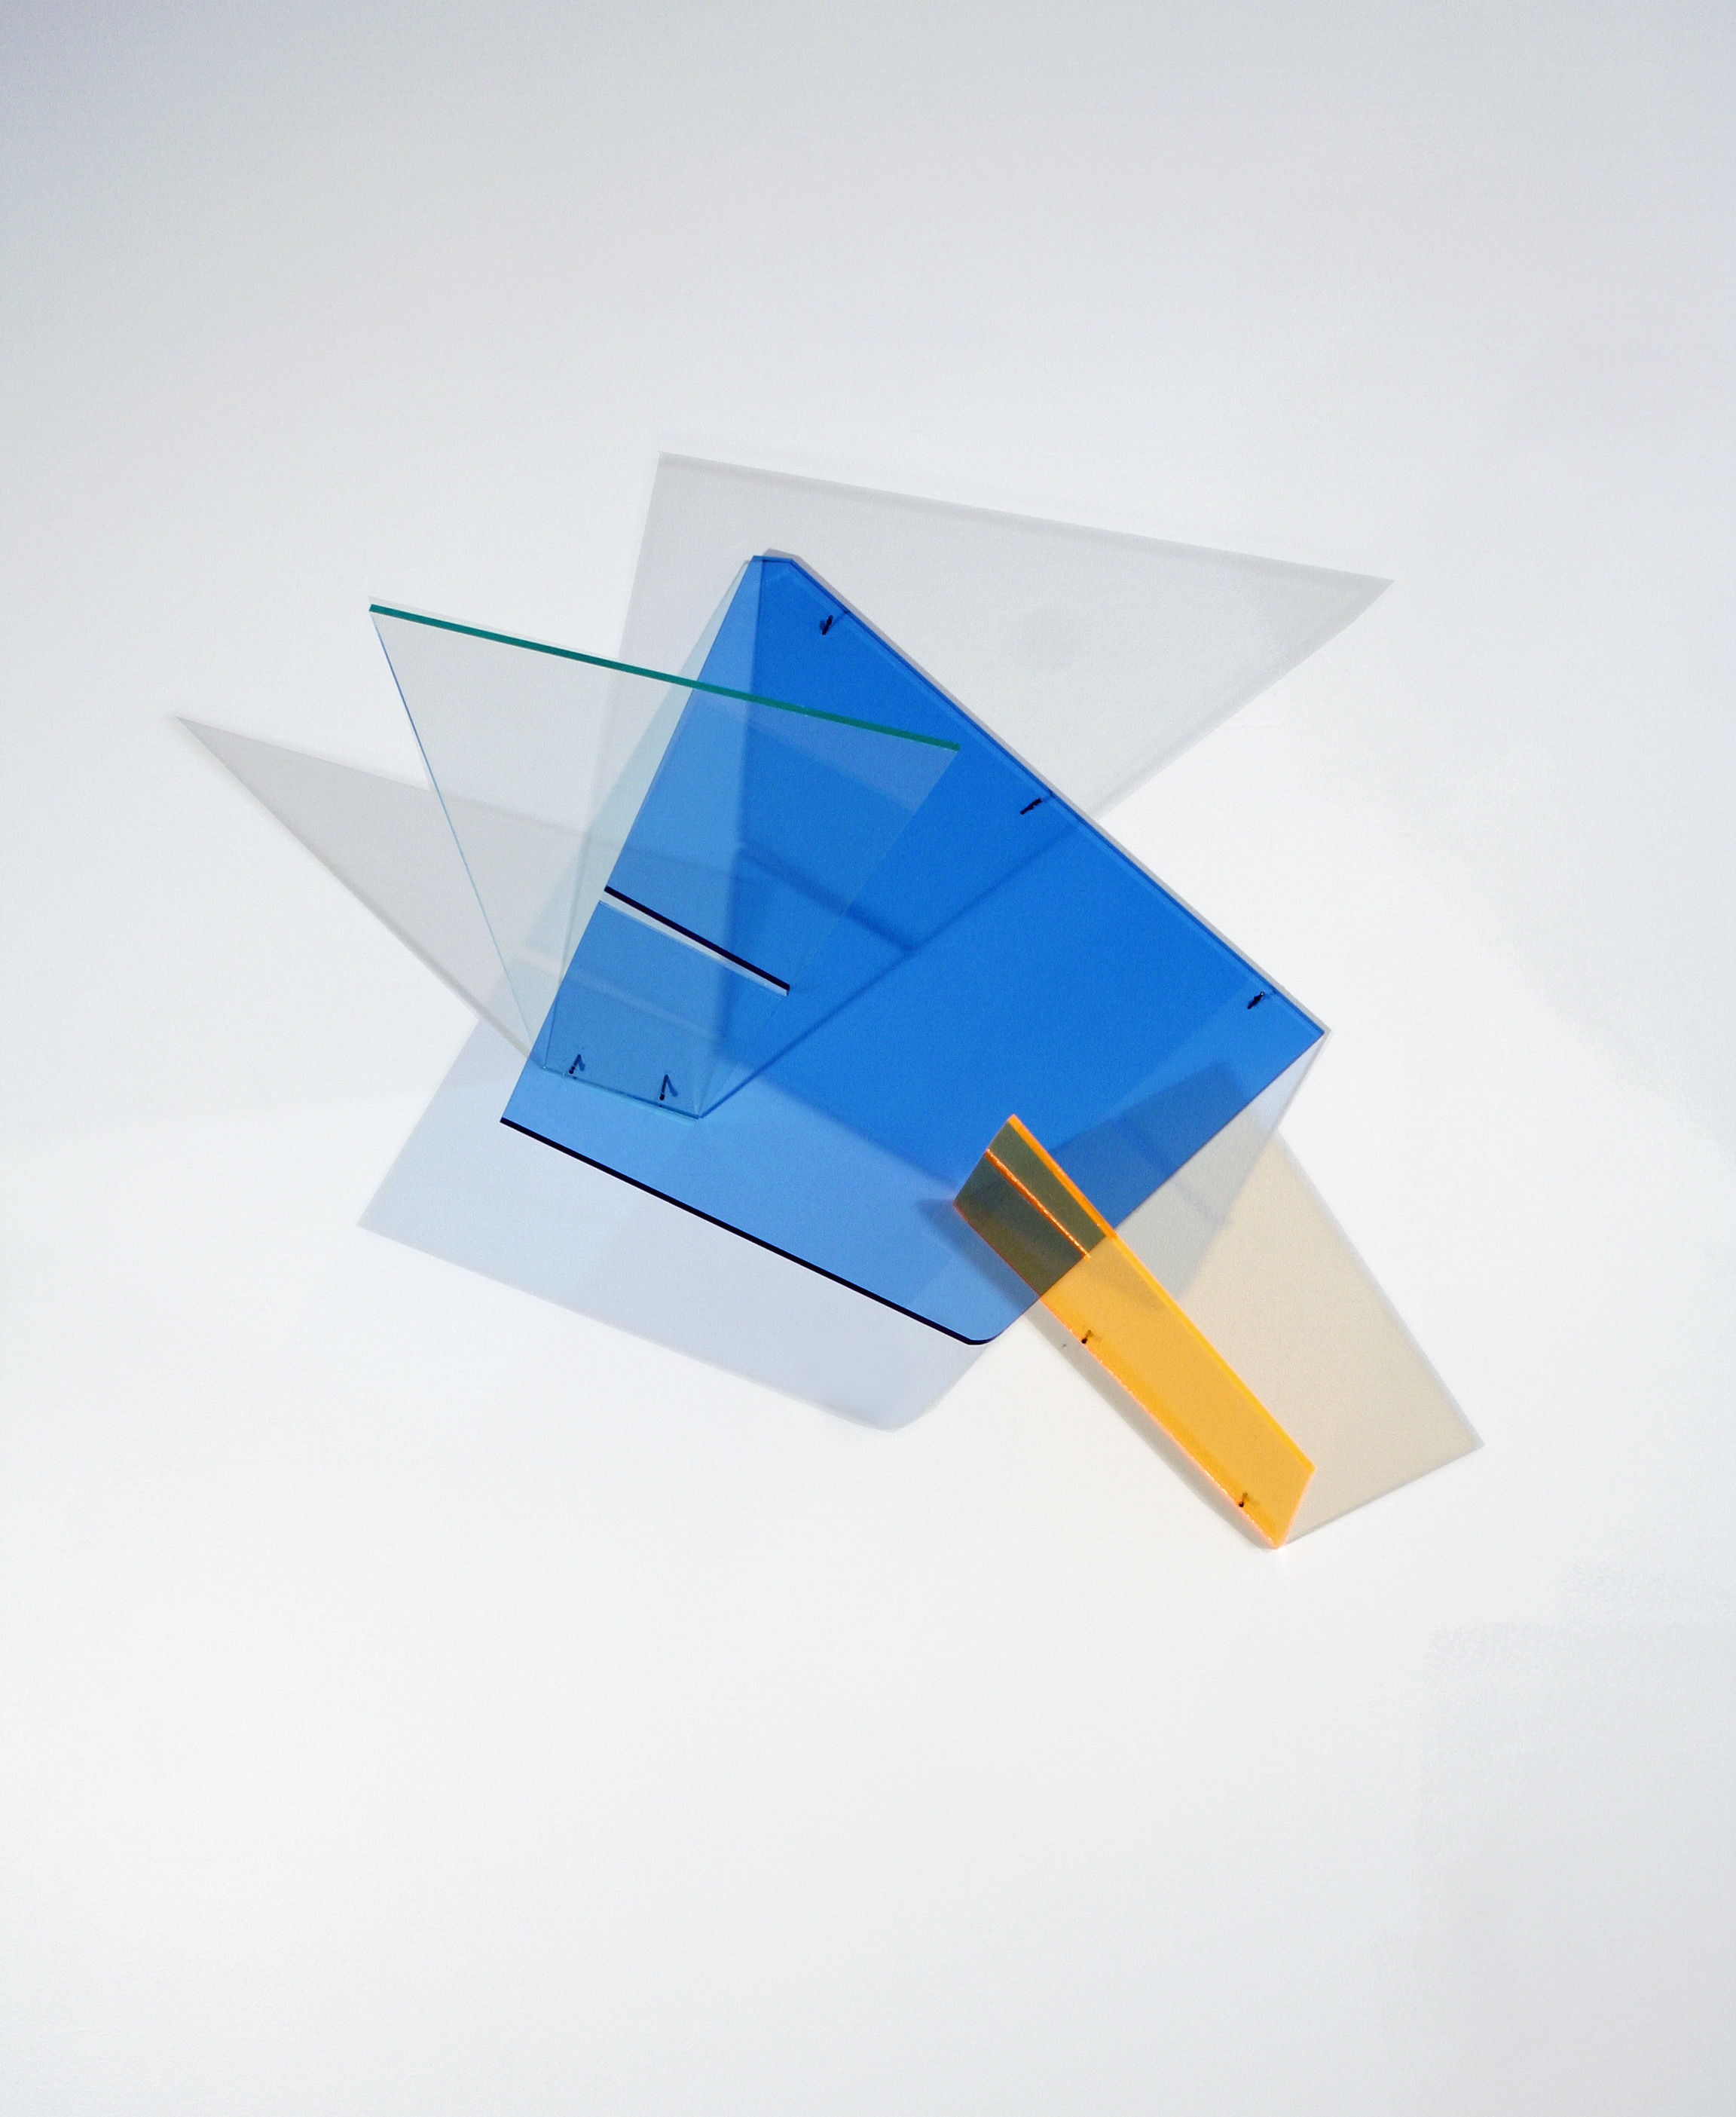 Recurrent   2014 Plexiglas   18Lx15Wx10D inches /46x38x25 cm